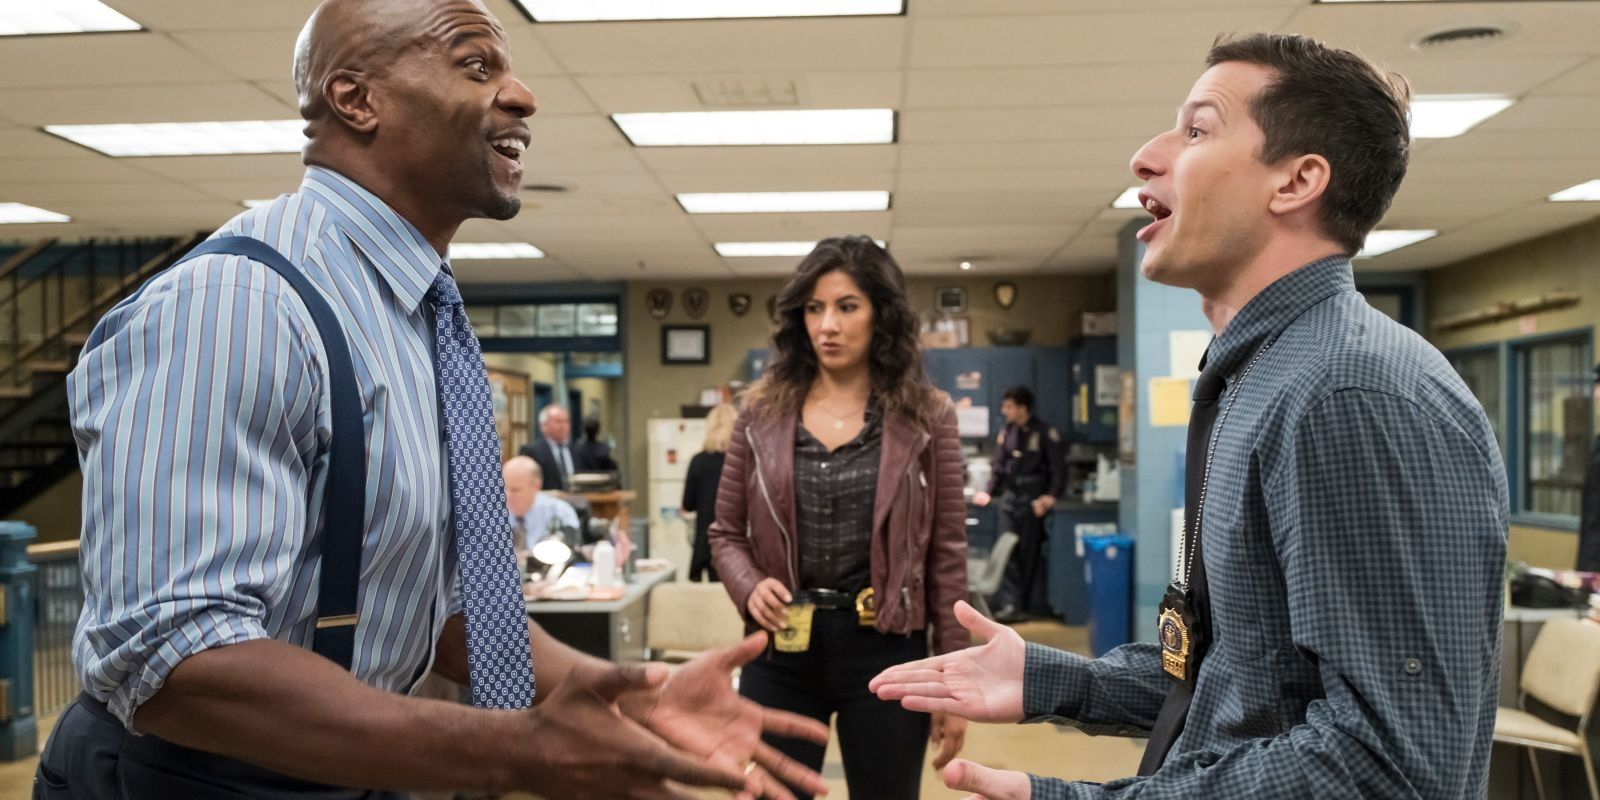 The 5 Best (And 5 Worst) Brooklyn Nine Nine Episodes